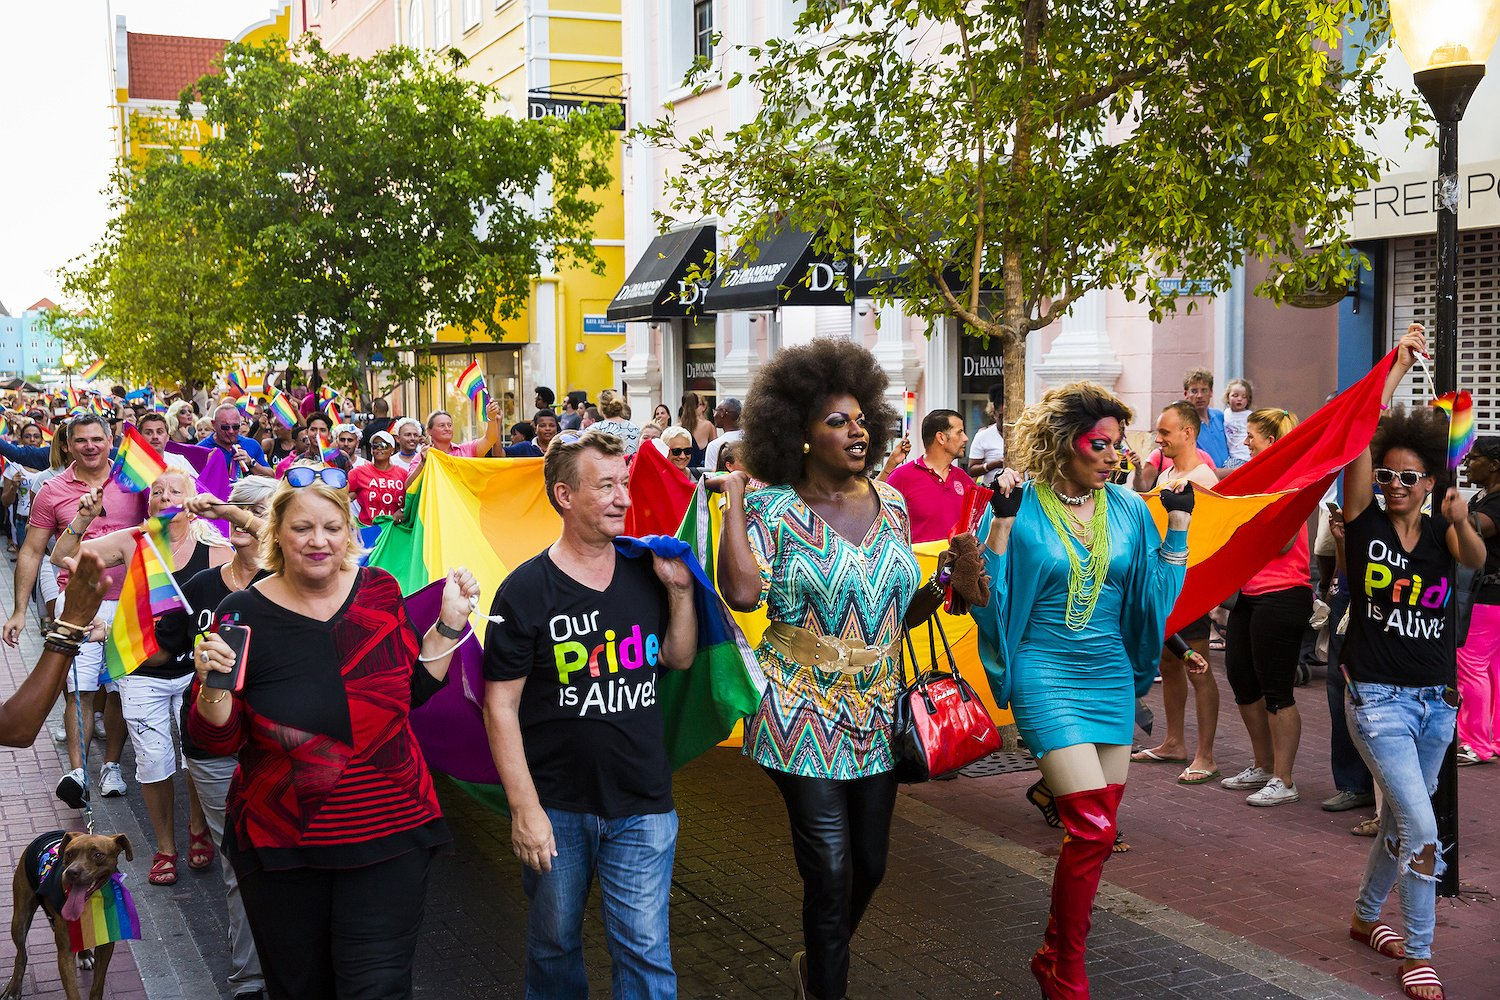 Pride Report | Our Pride is Alive!